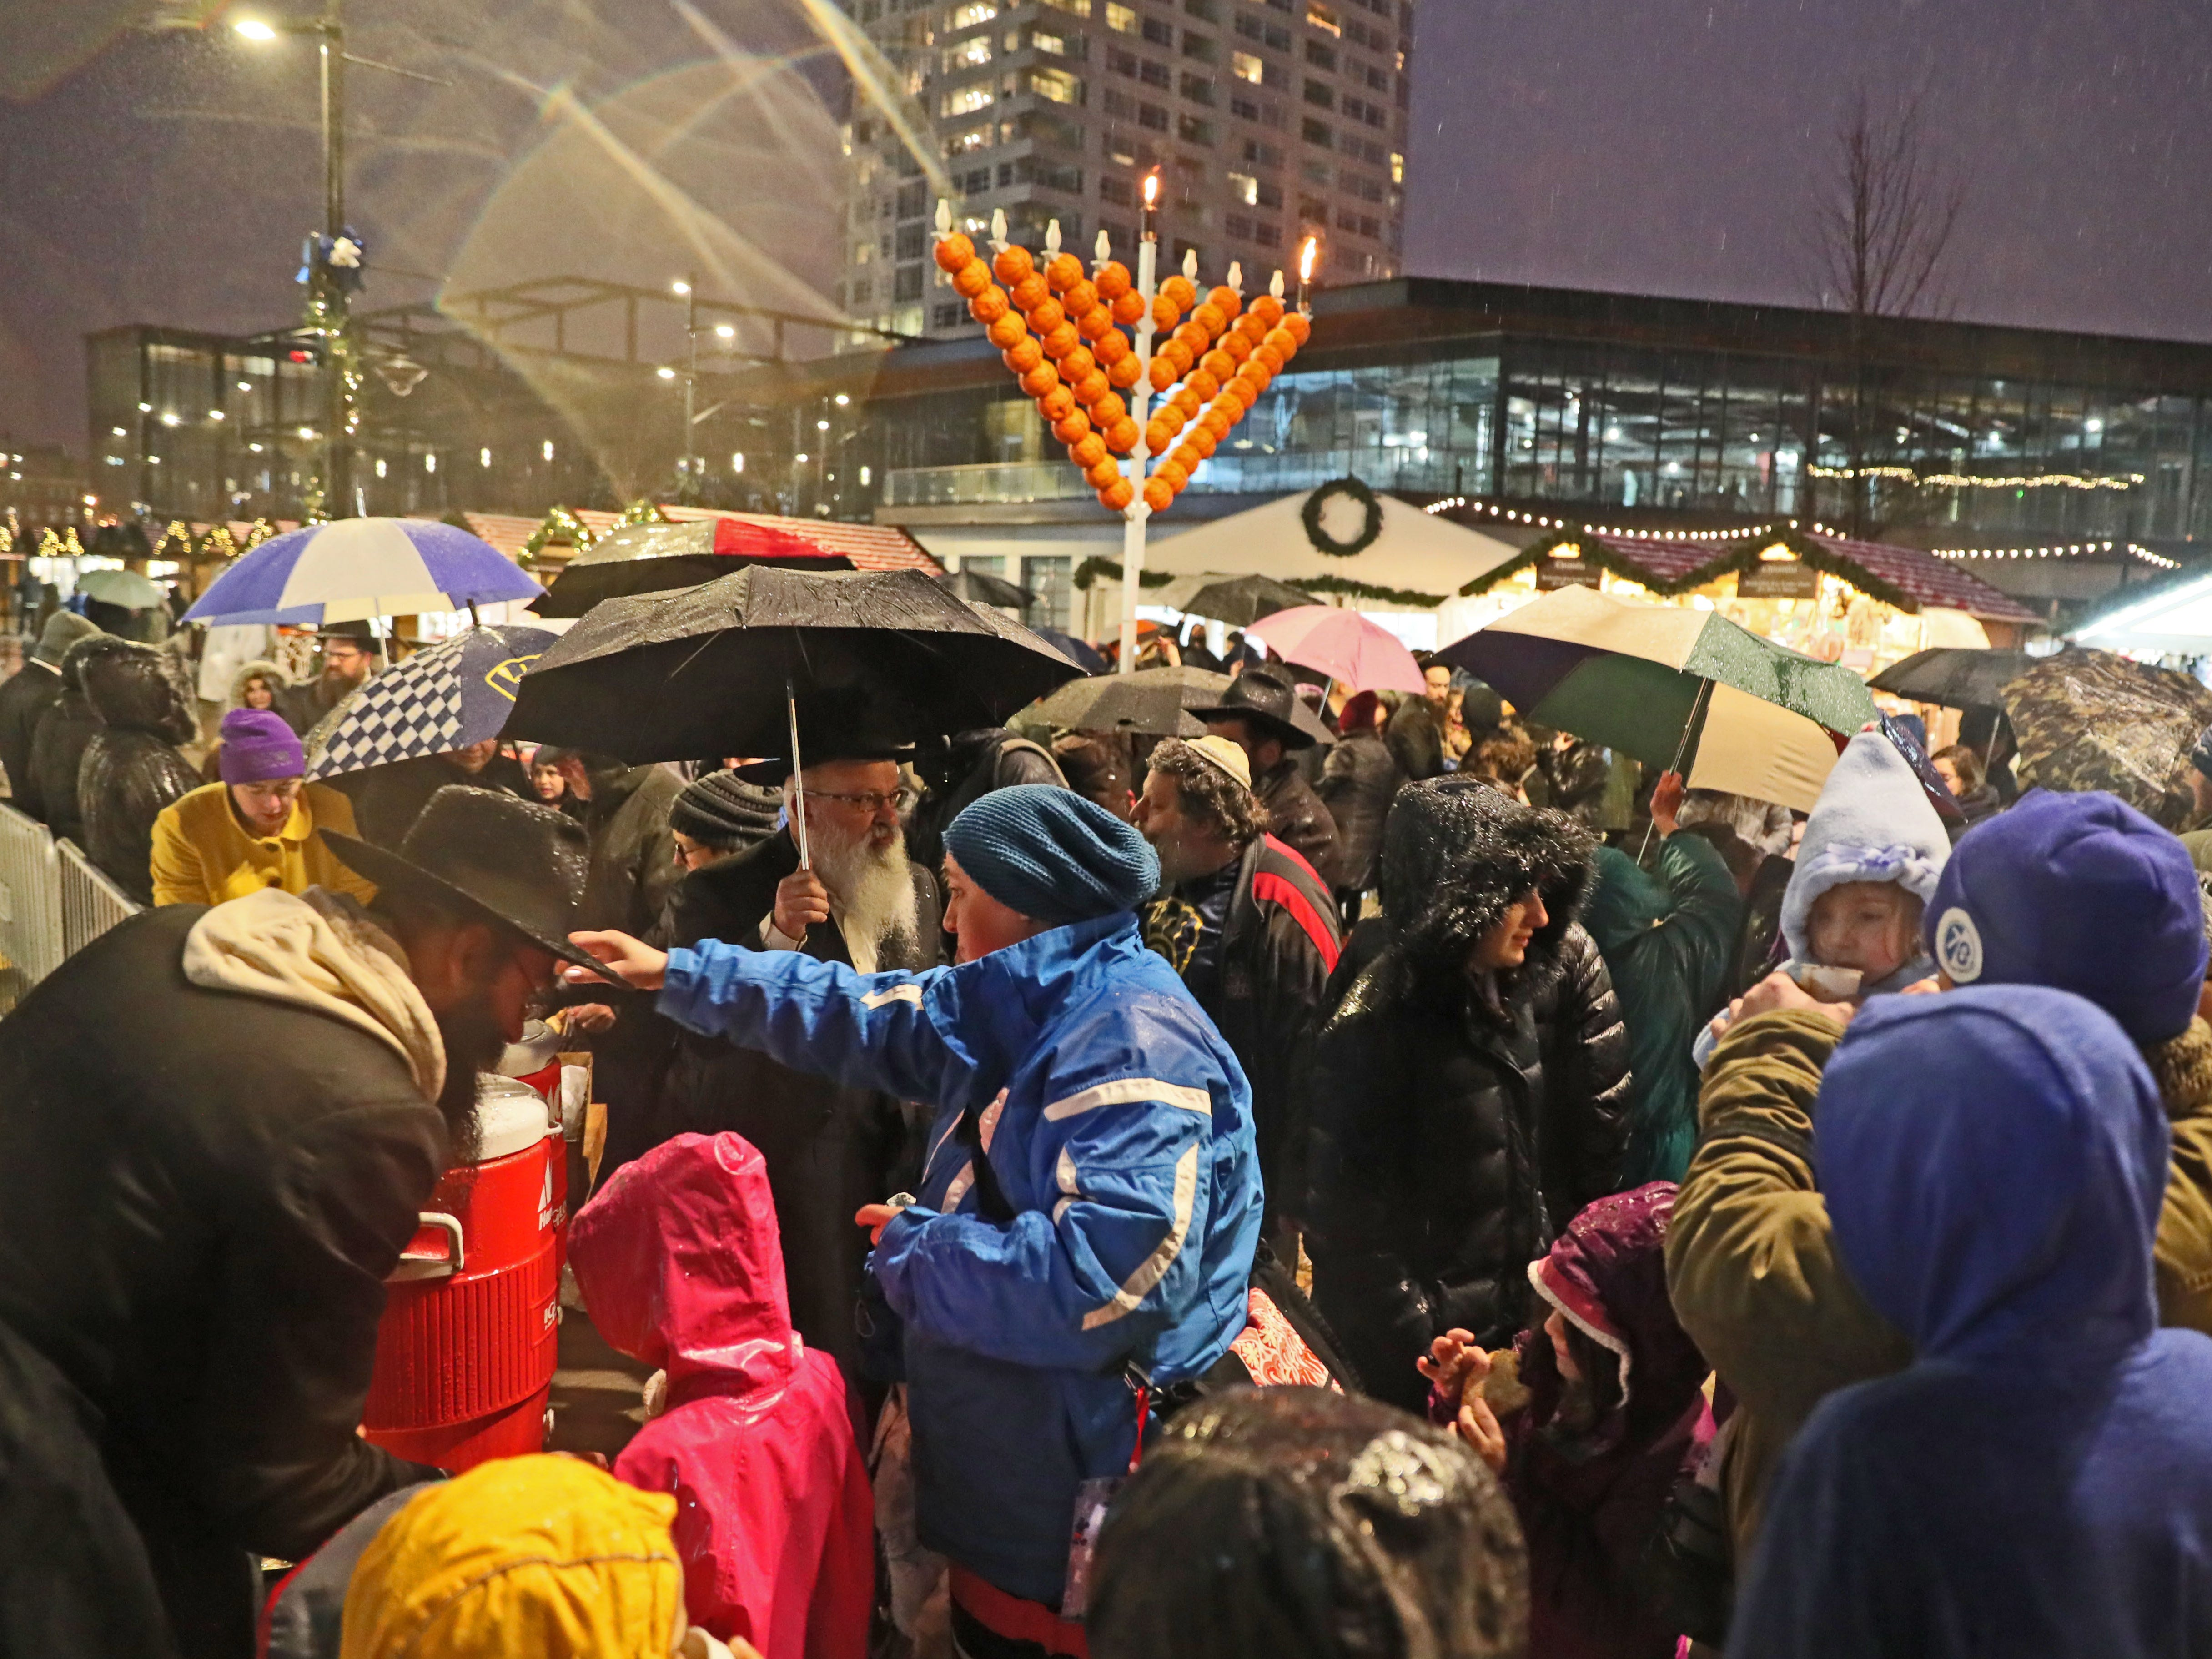 Children and adults gather for hot chocolate after the menorah lighting ceremony on the plaza at Fiserv Forum.